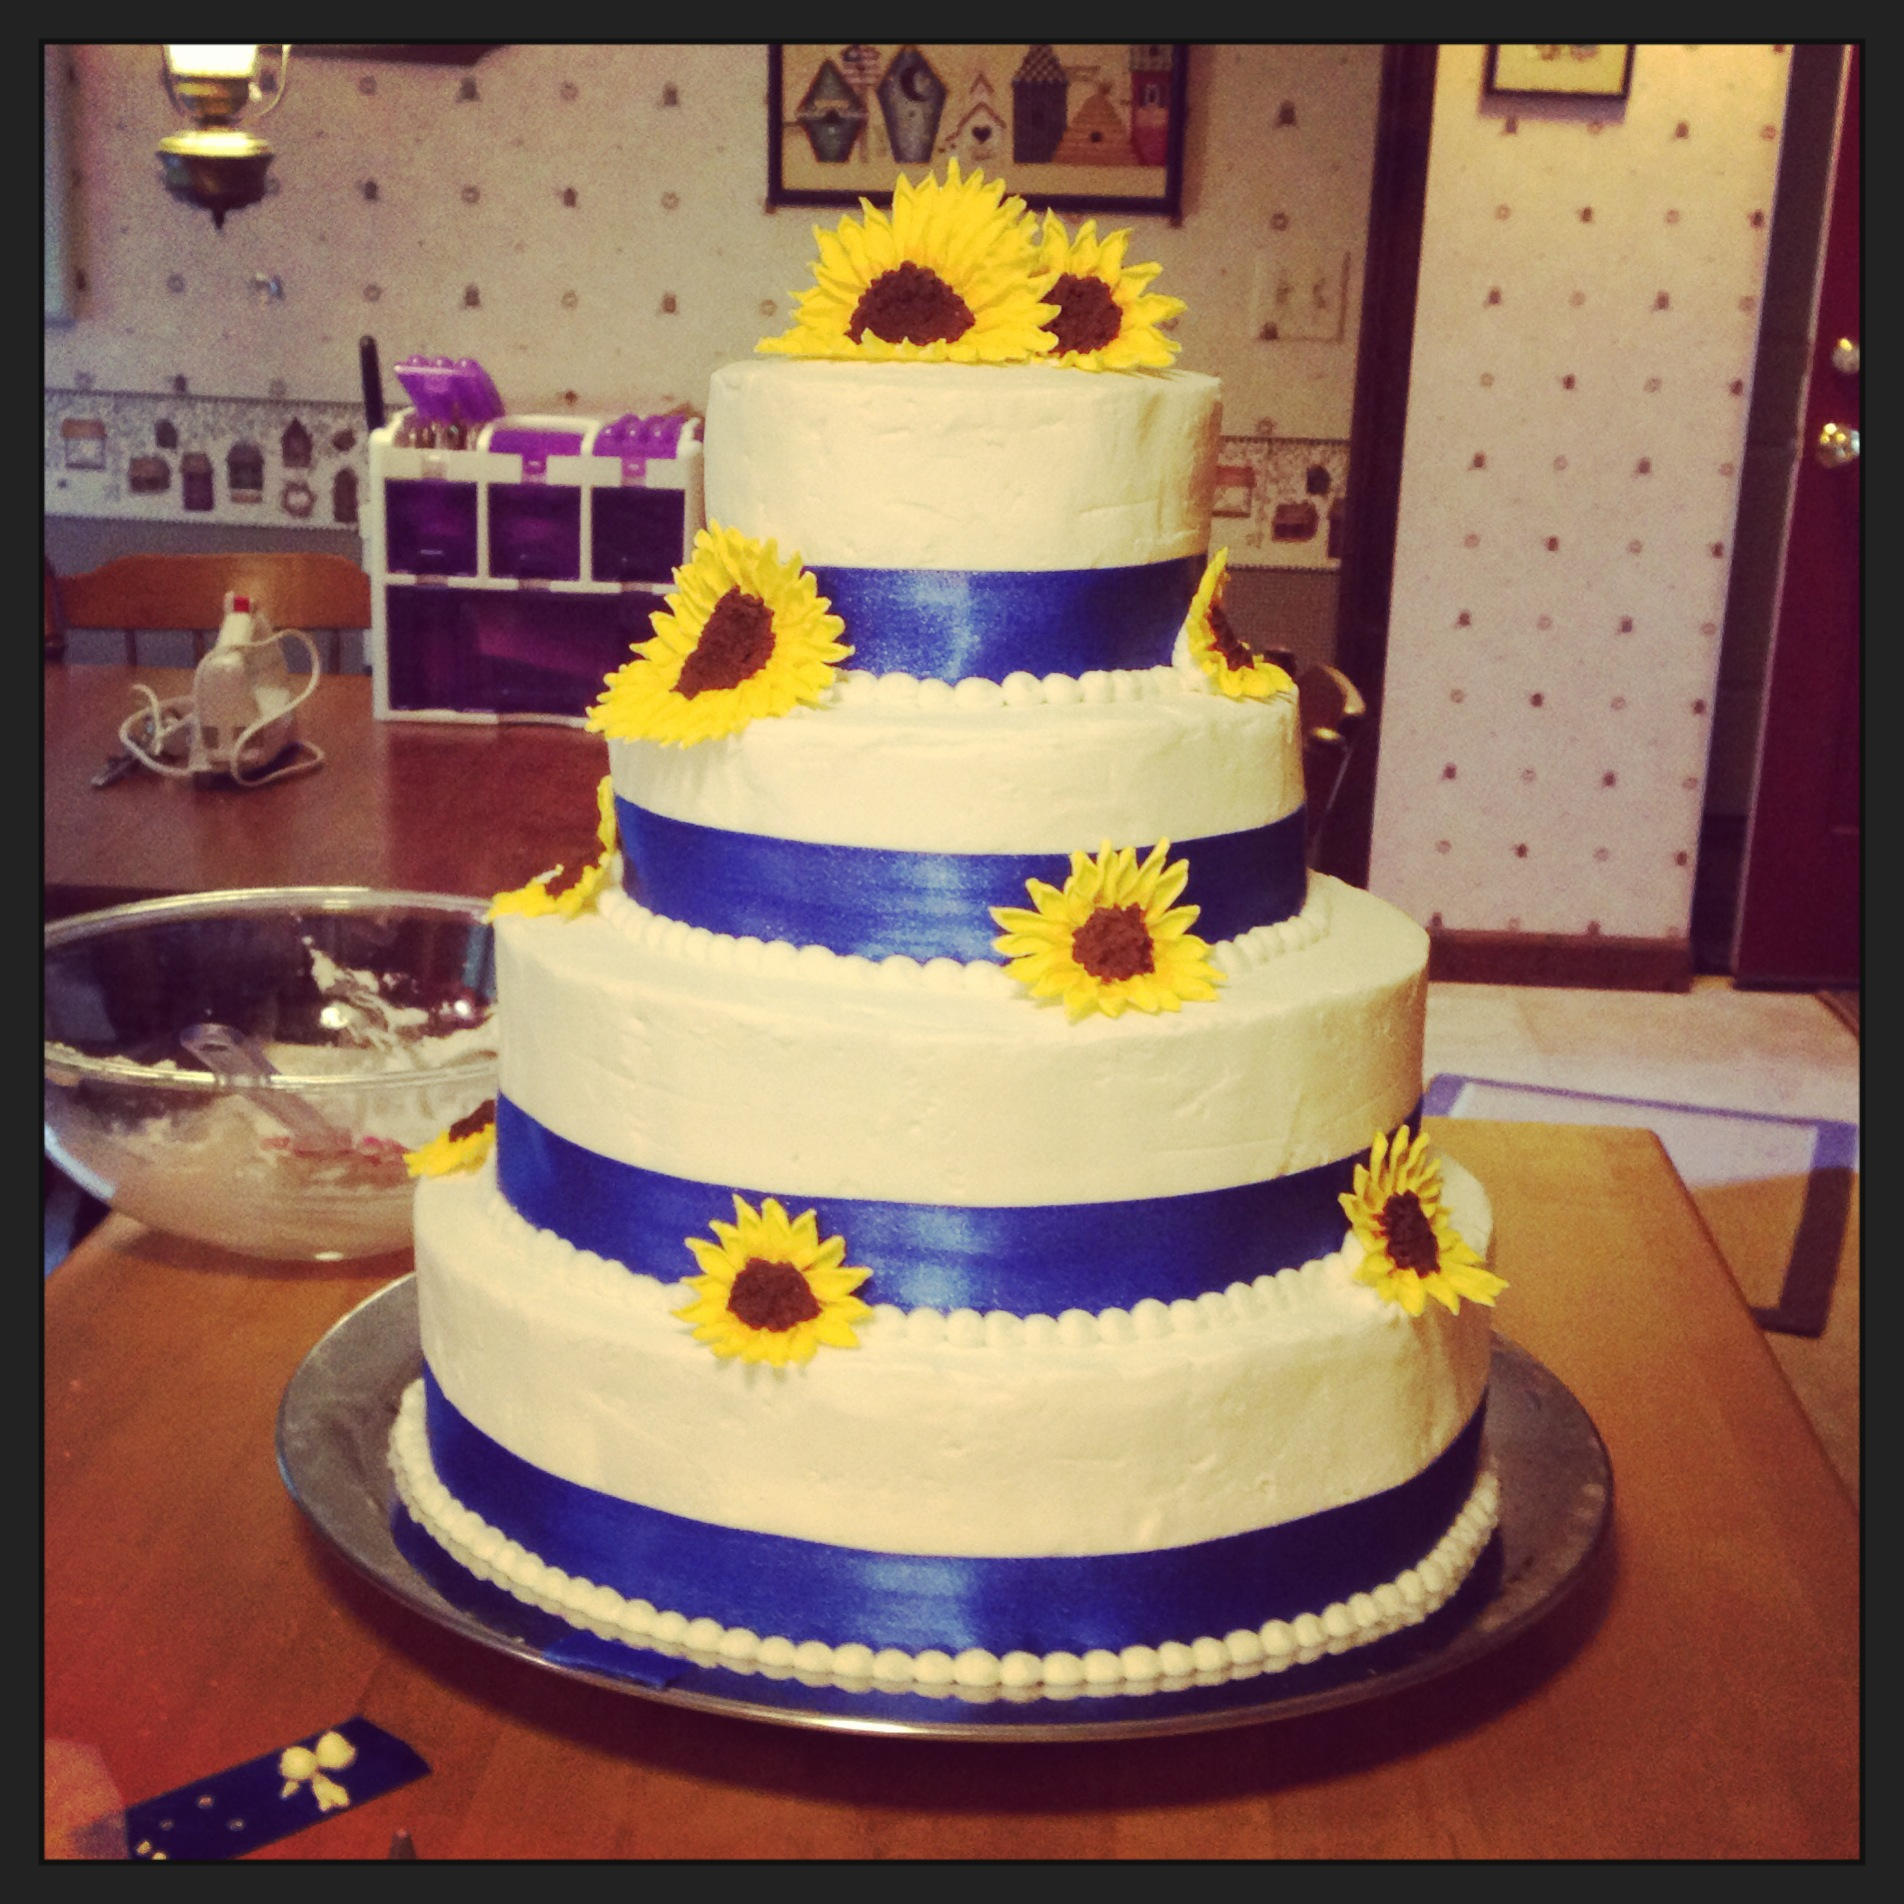 My Best Friend's Wedding Cake – Making My First Wedding